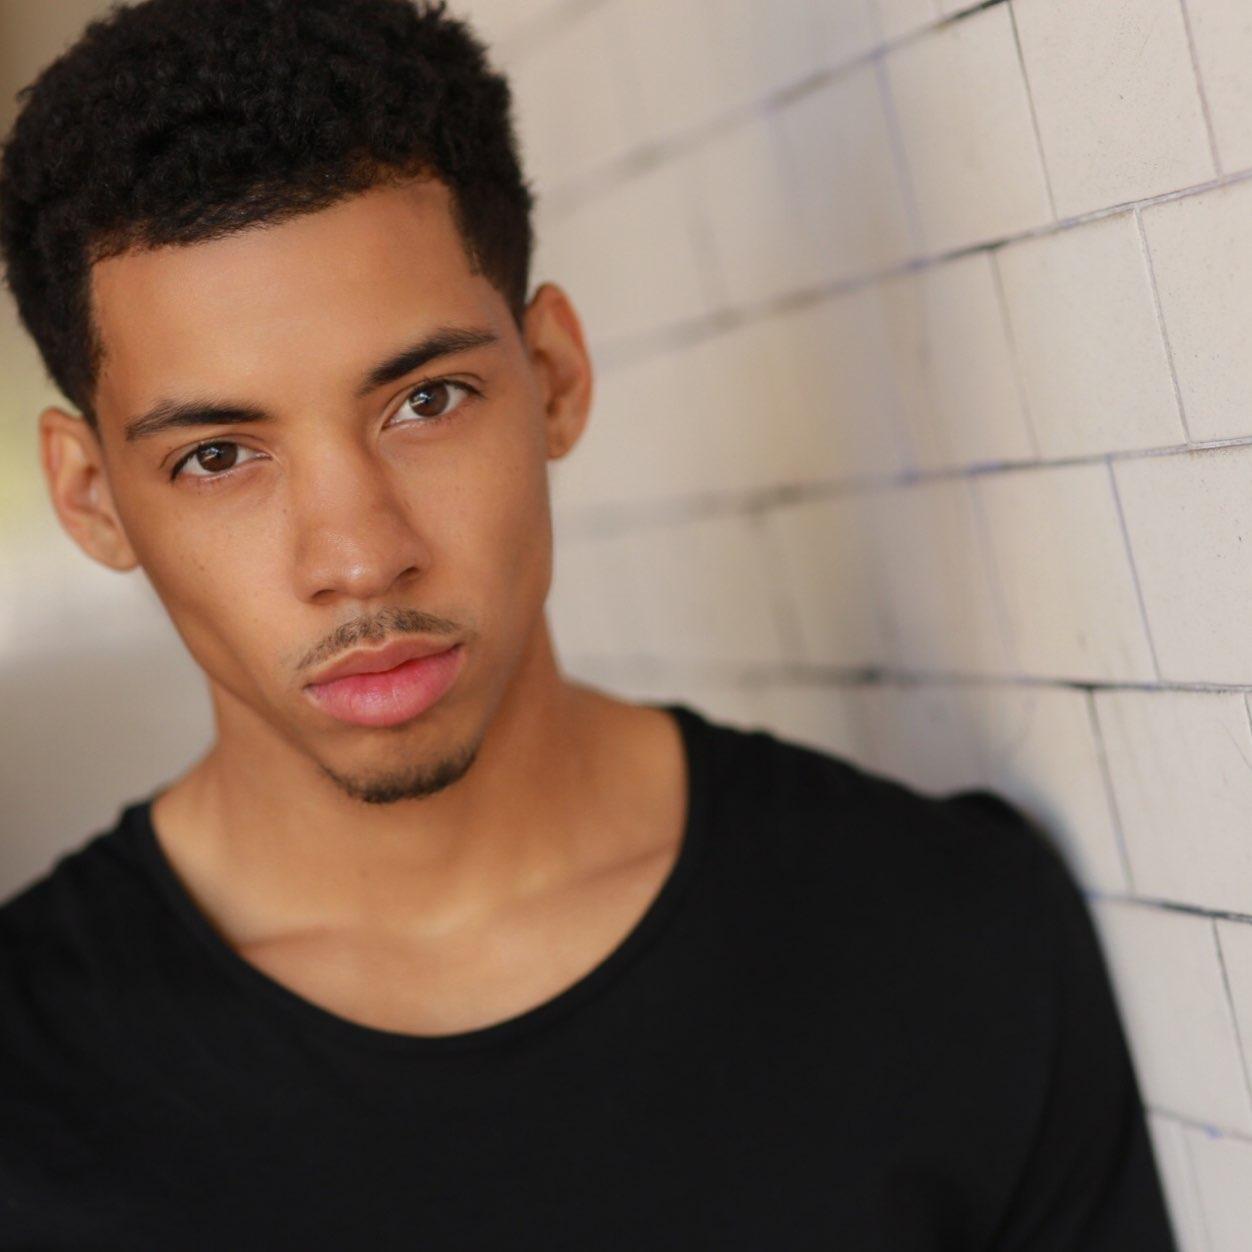 Web Video Star Melvin Gregg - age: 28